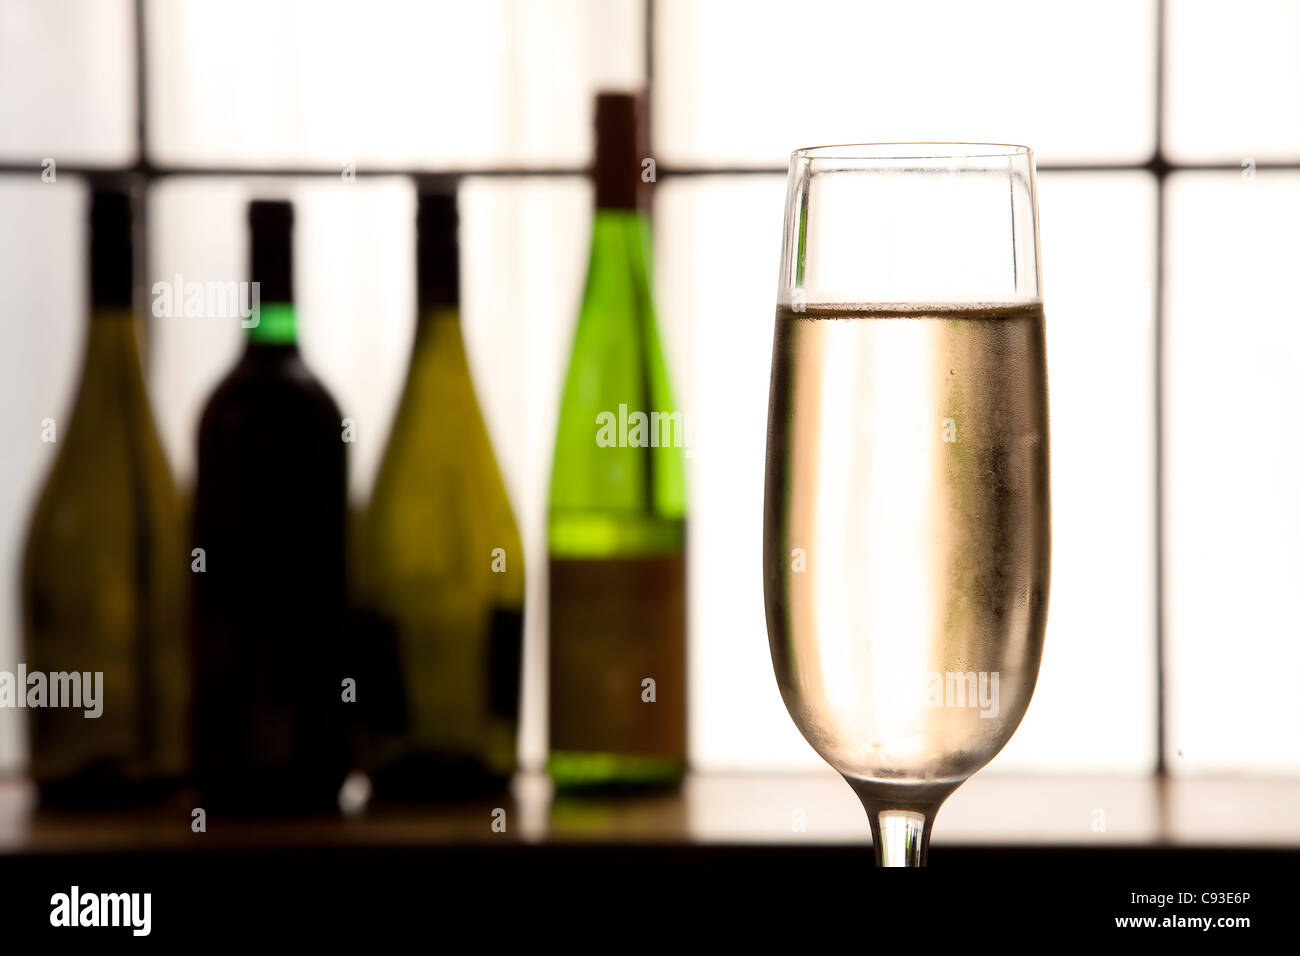 Glass of champagne in foreground with sepia tones and bottles in back ground. - Stock Image